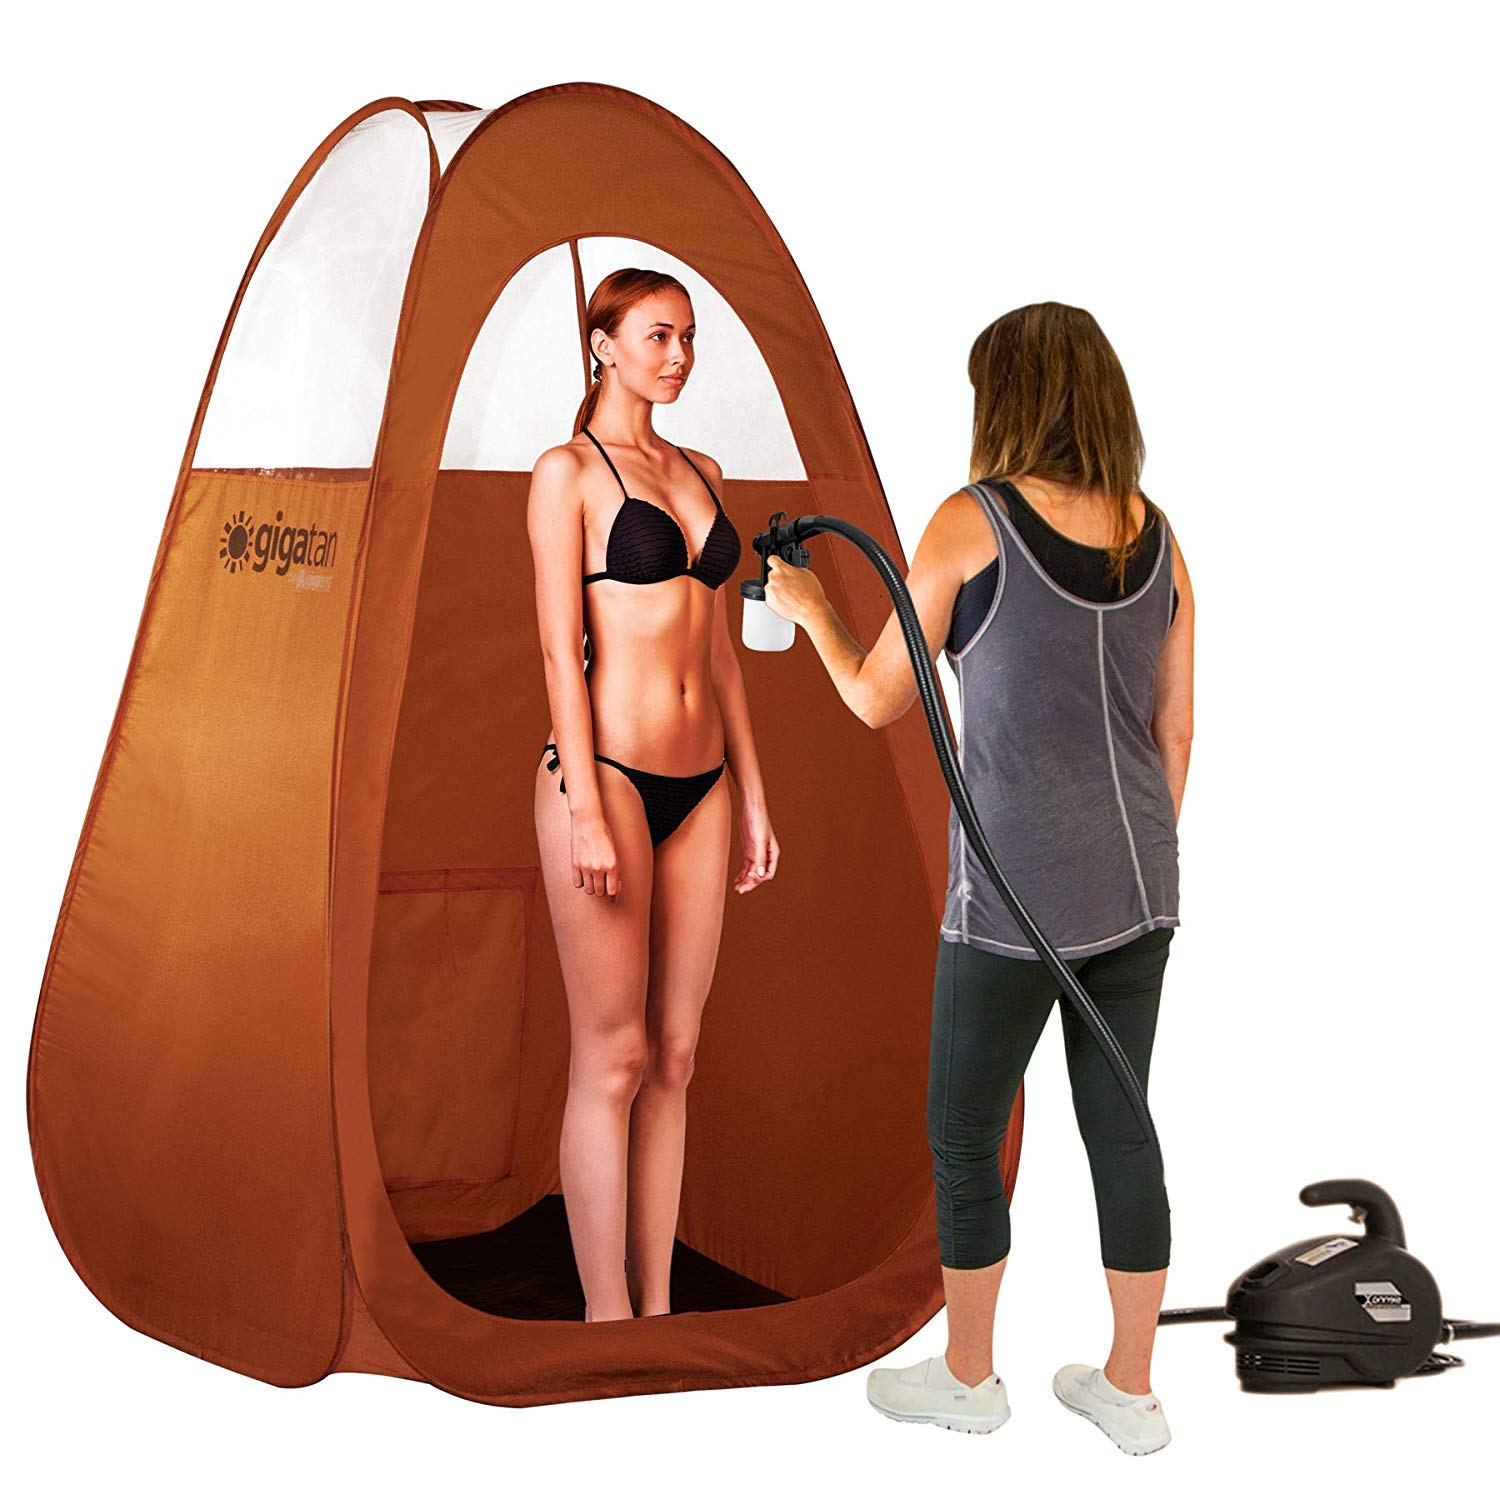 Gigatent Spray Tan Pop Up Tent -  Professional Sunless Tanning Pop-Up Spraying Booth for Airbrush Art, Makeup & Painting - 50'' x 37'', Folds Easily in 30 Seconds - with Carry Bag